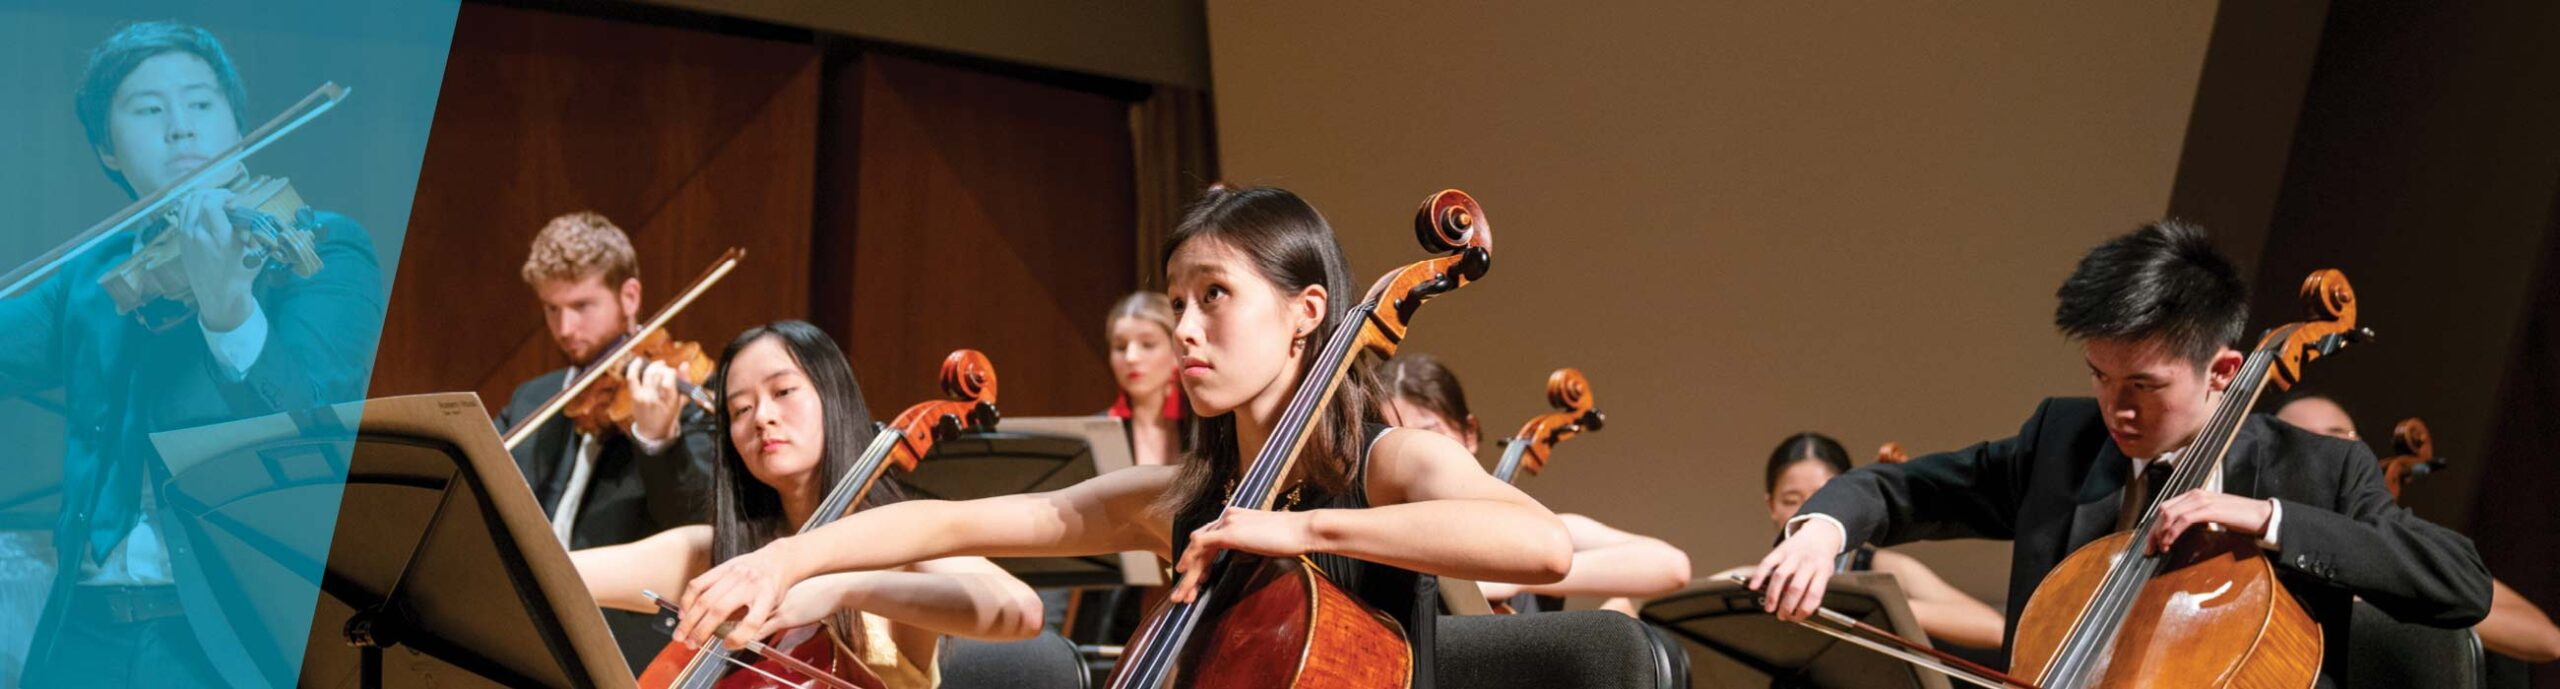 Cellists in chamber orchestra performing on stage